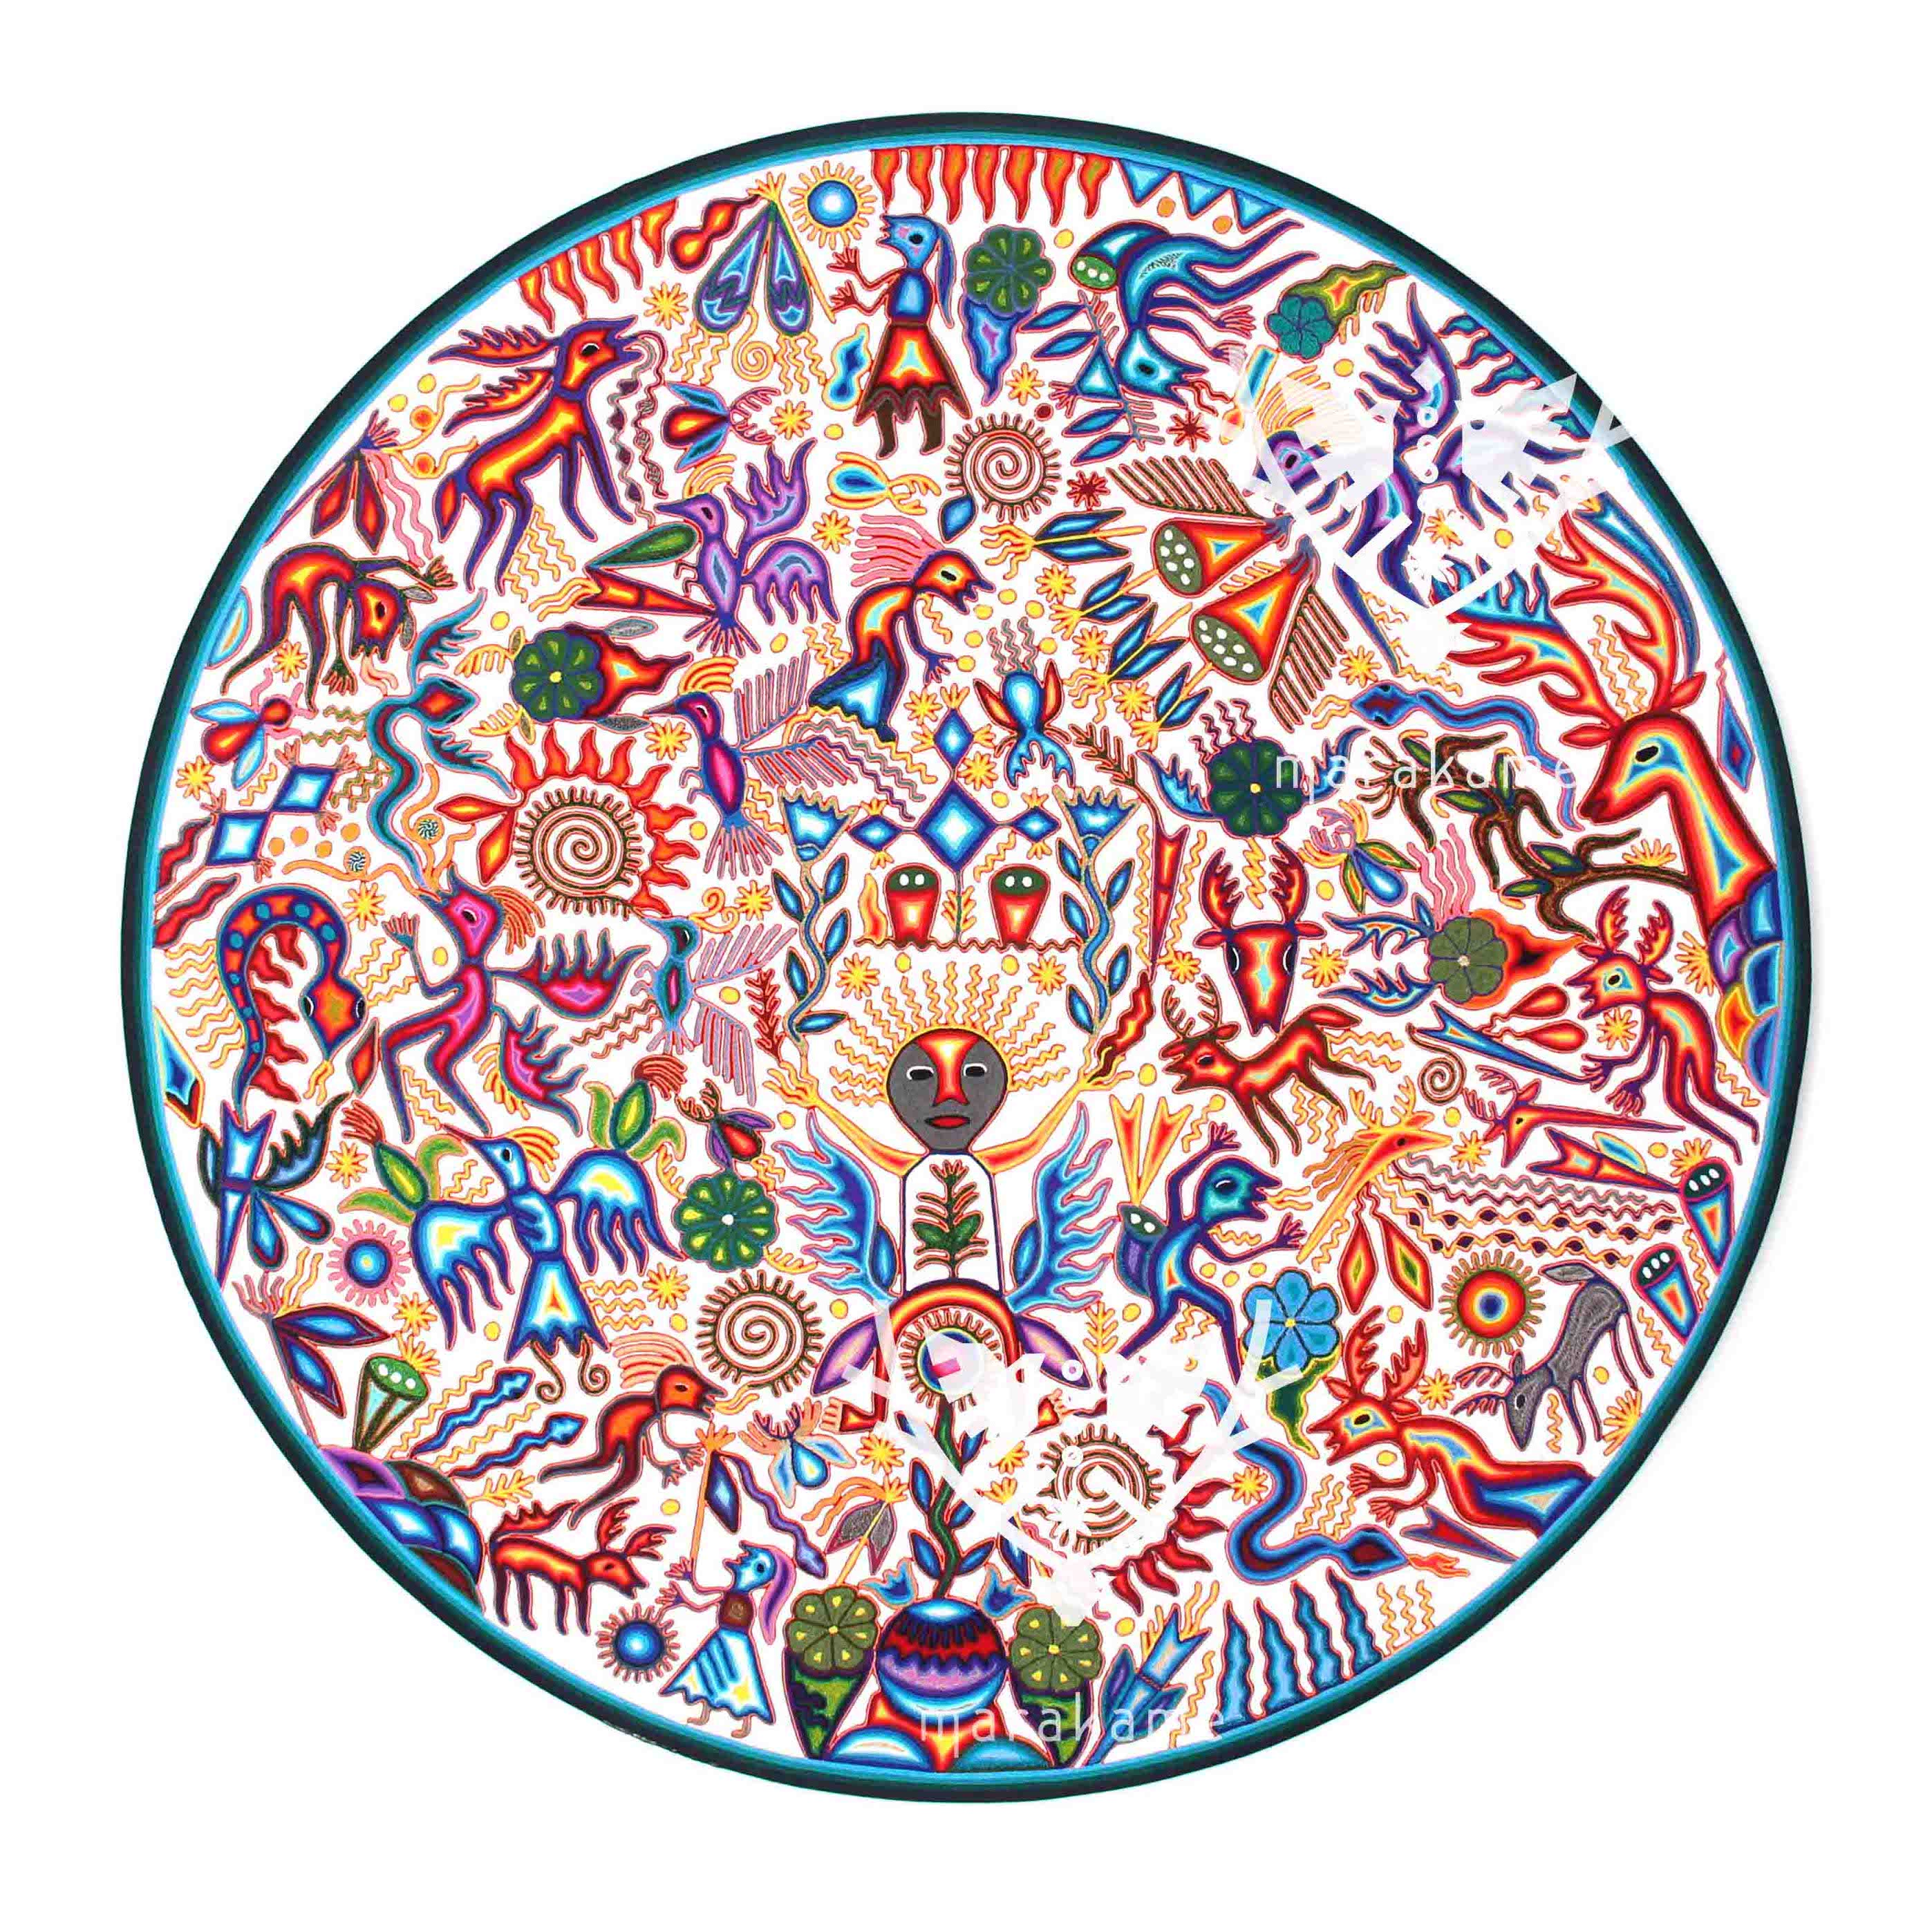 Huichol yarn nierika in a 120 cm wooden circle. diameter with white background